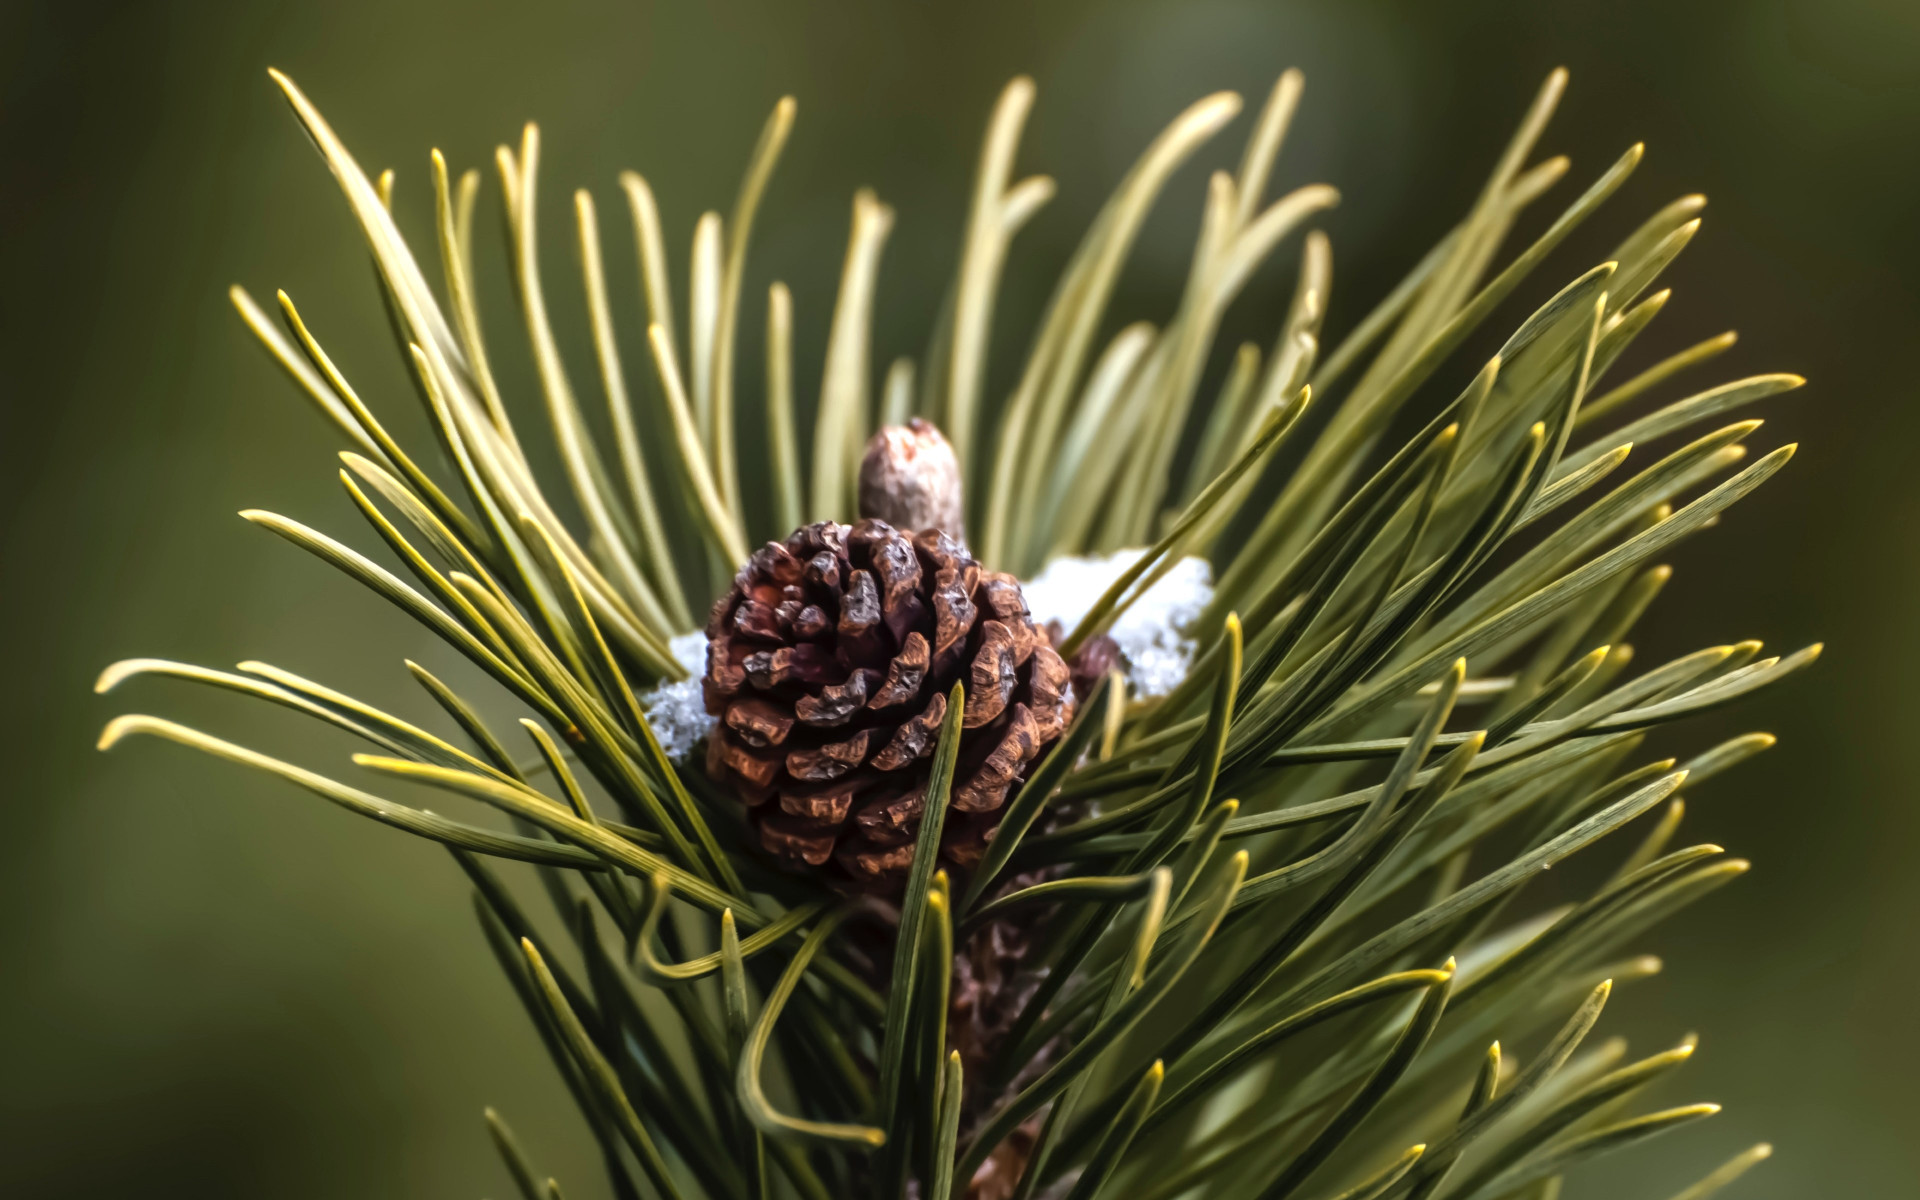 Cone and pine needles | 1920x1200 wallpaper